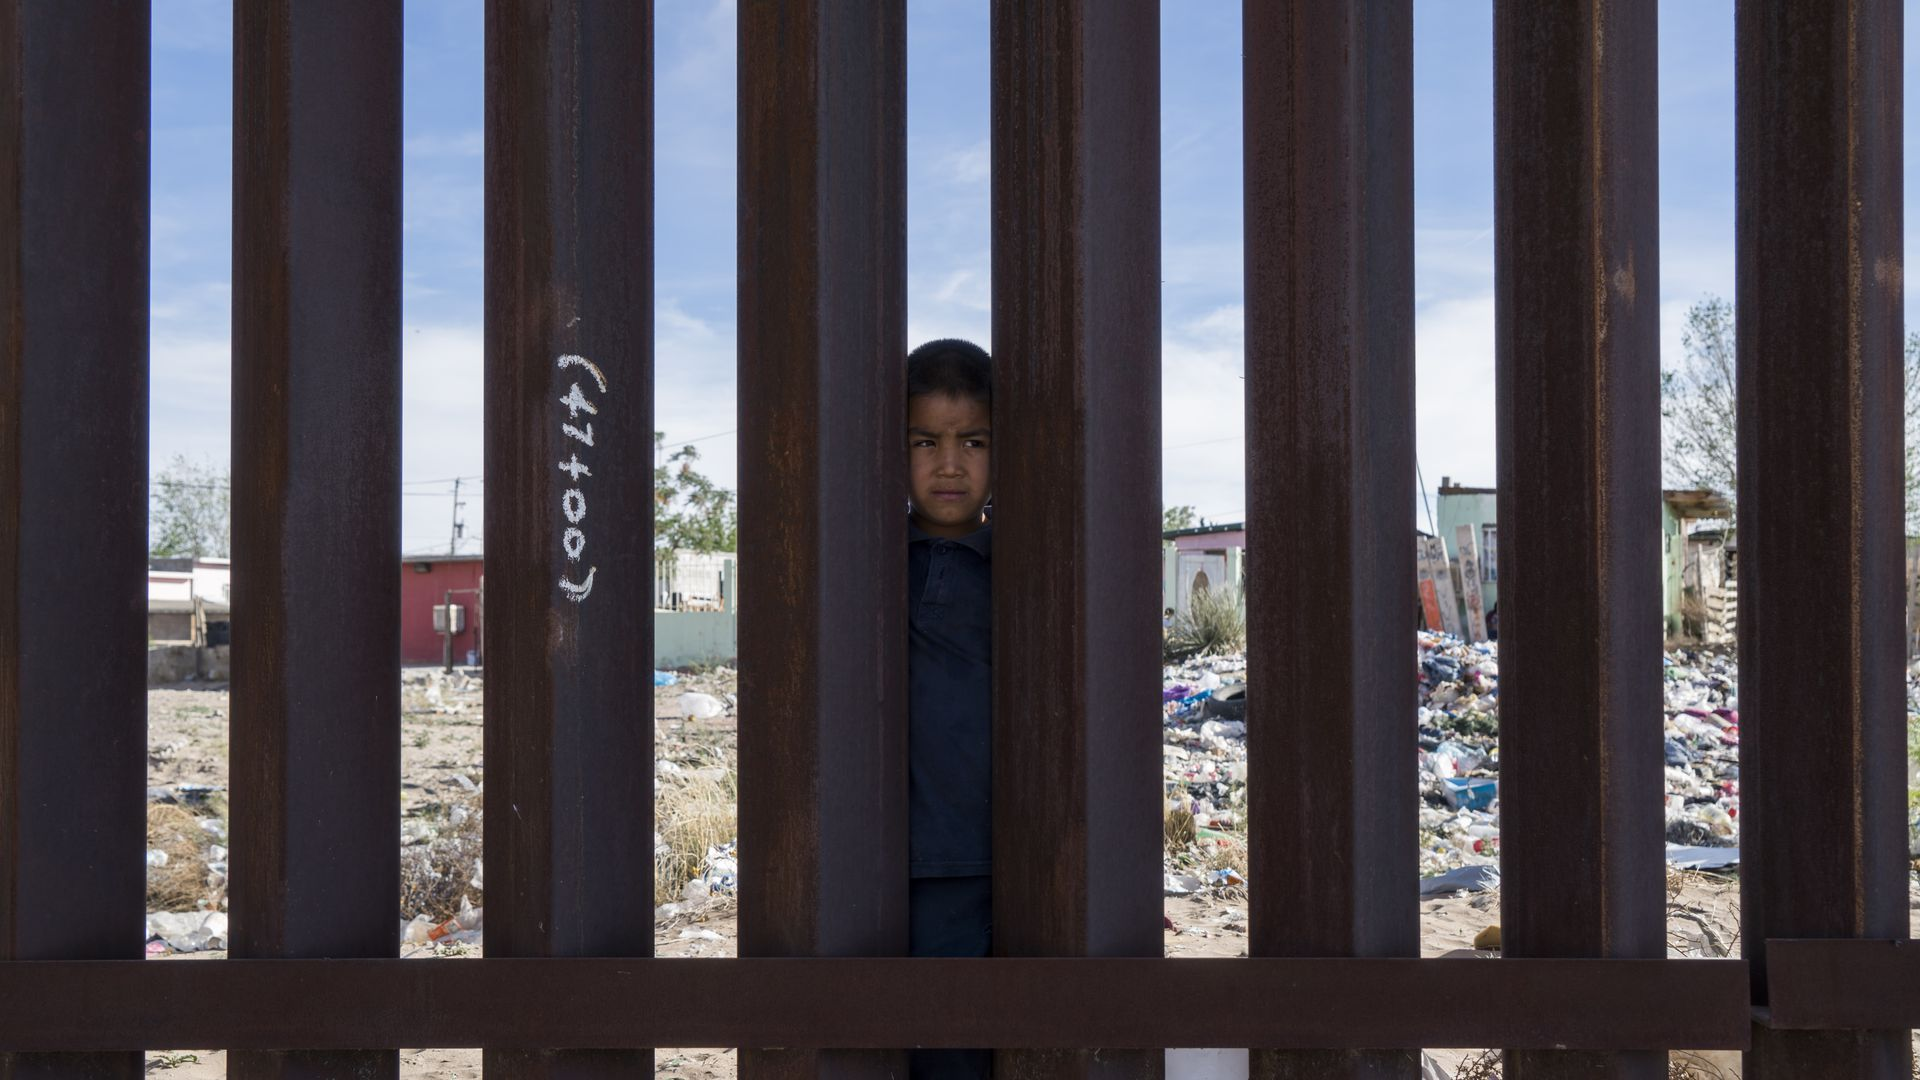 Little boy stand on the Mexico side of the border wall with his head peeking through the slats of the metal fence.